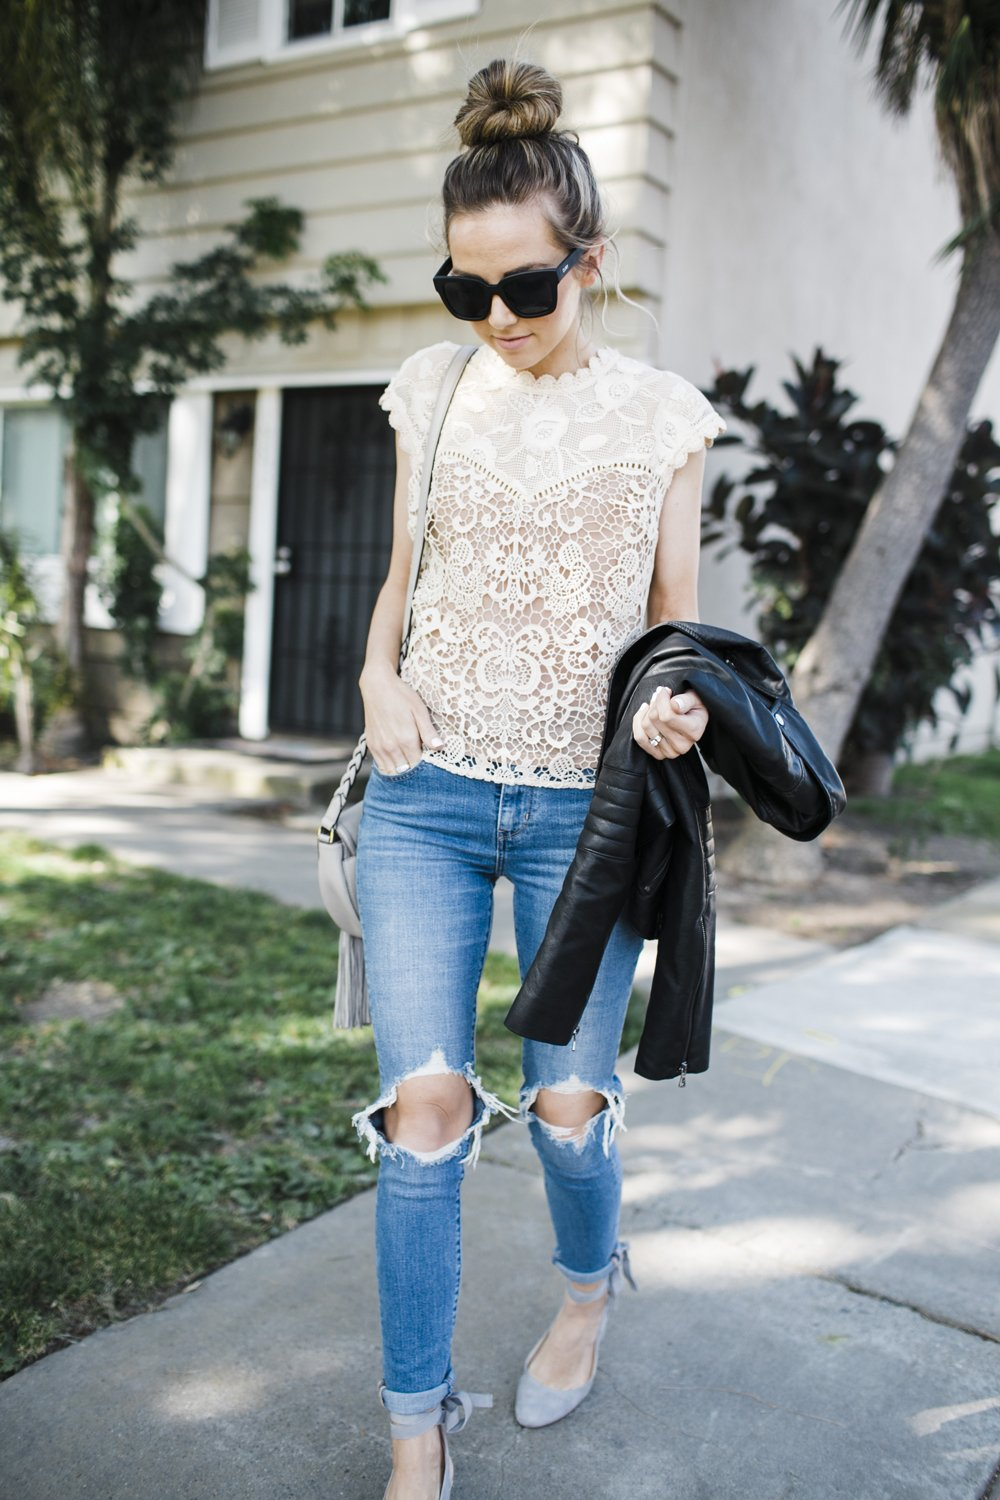 Merrick's Art Tracy Reese Lace Top